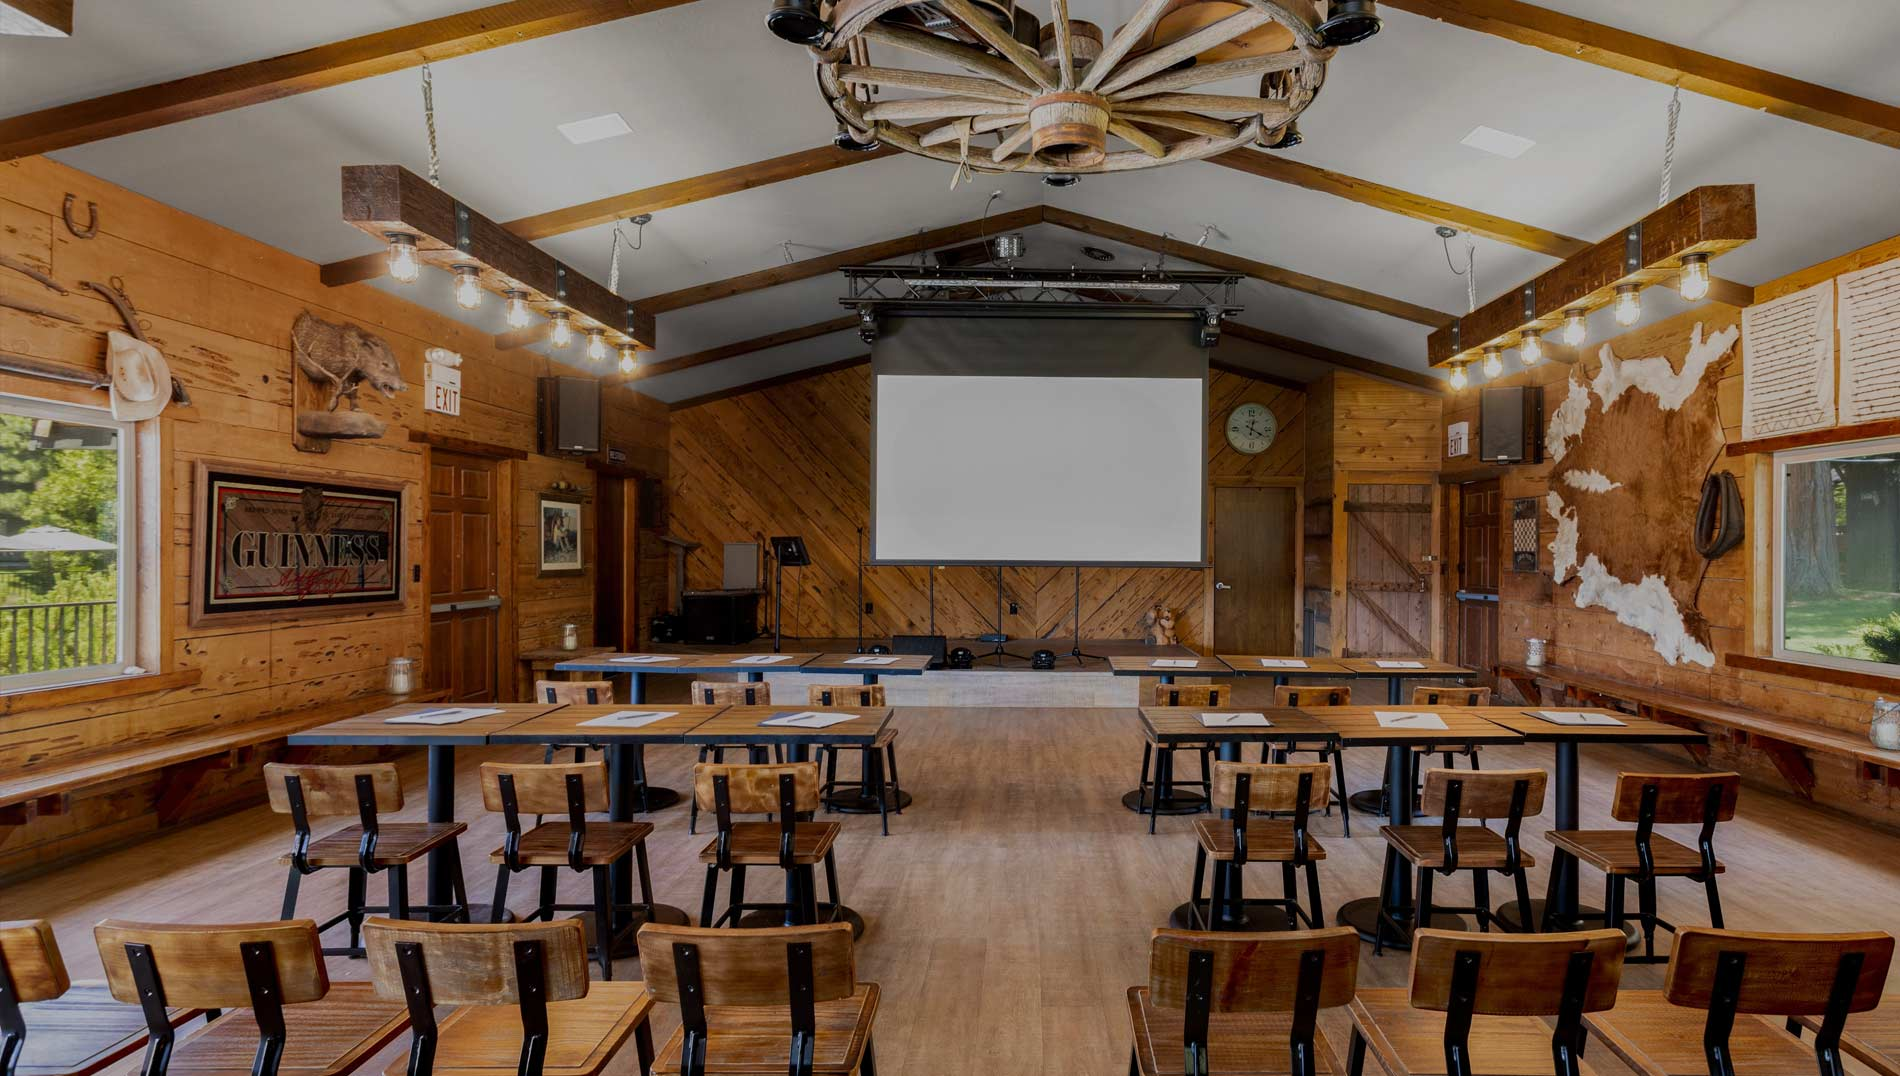 A meeting room with a screen up front at Greenhorn Ranch